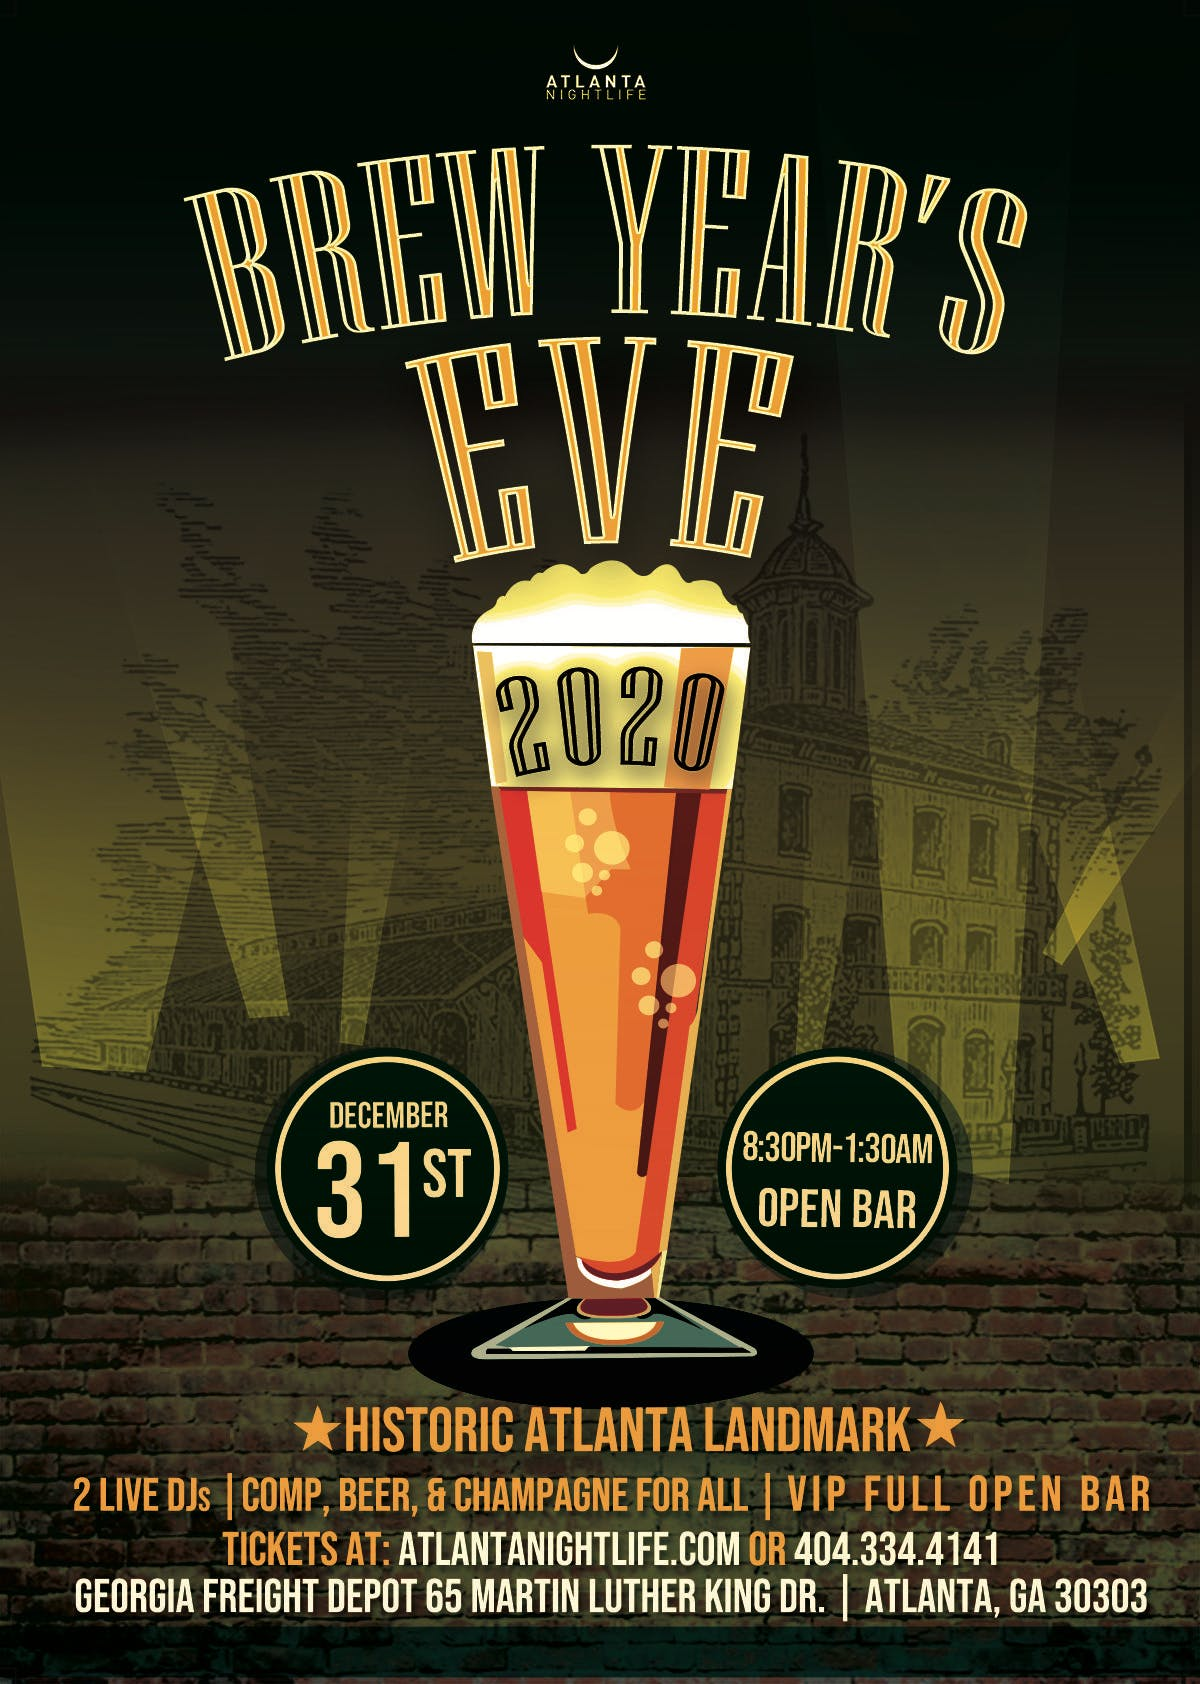 Atlanta brew years eve 2020